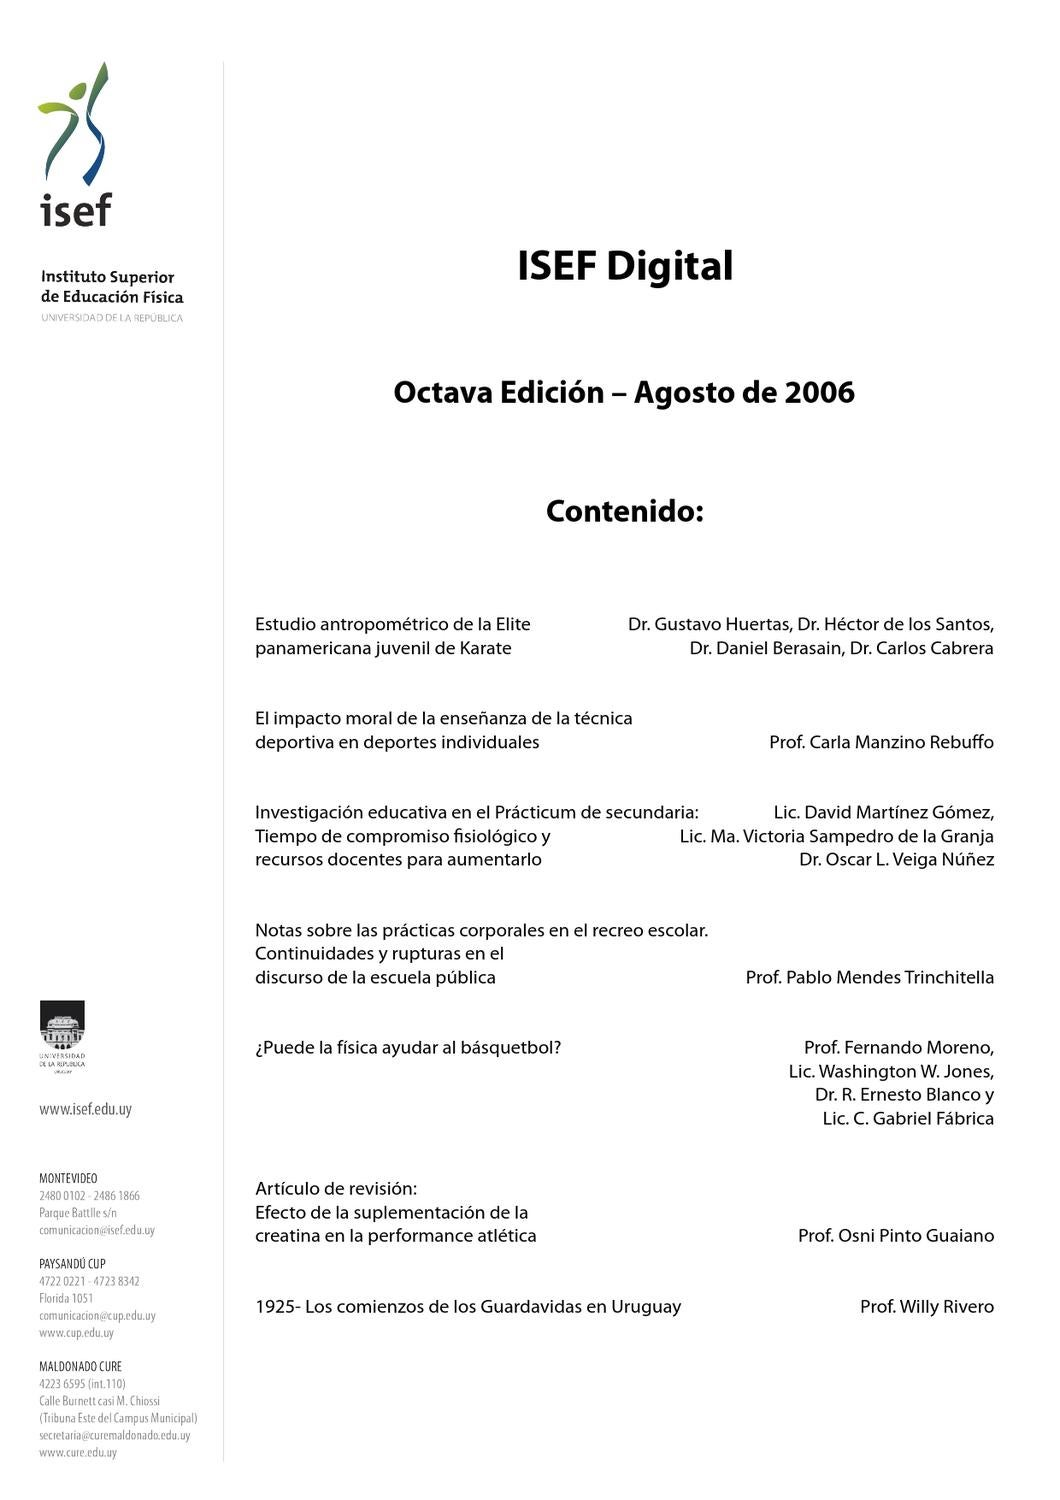 ISEF Digital - Octava edición (Agosto de 2006) by Instituto Superior ...